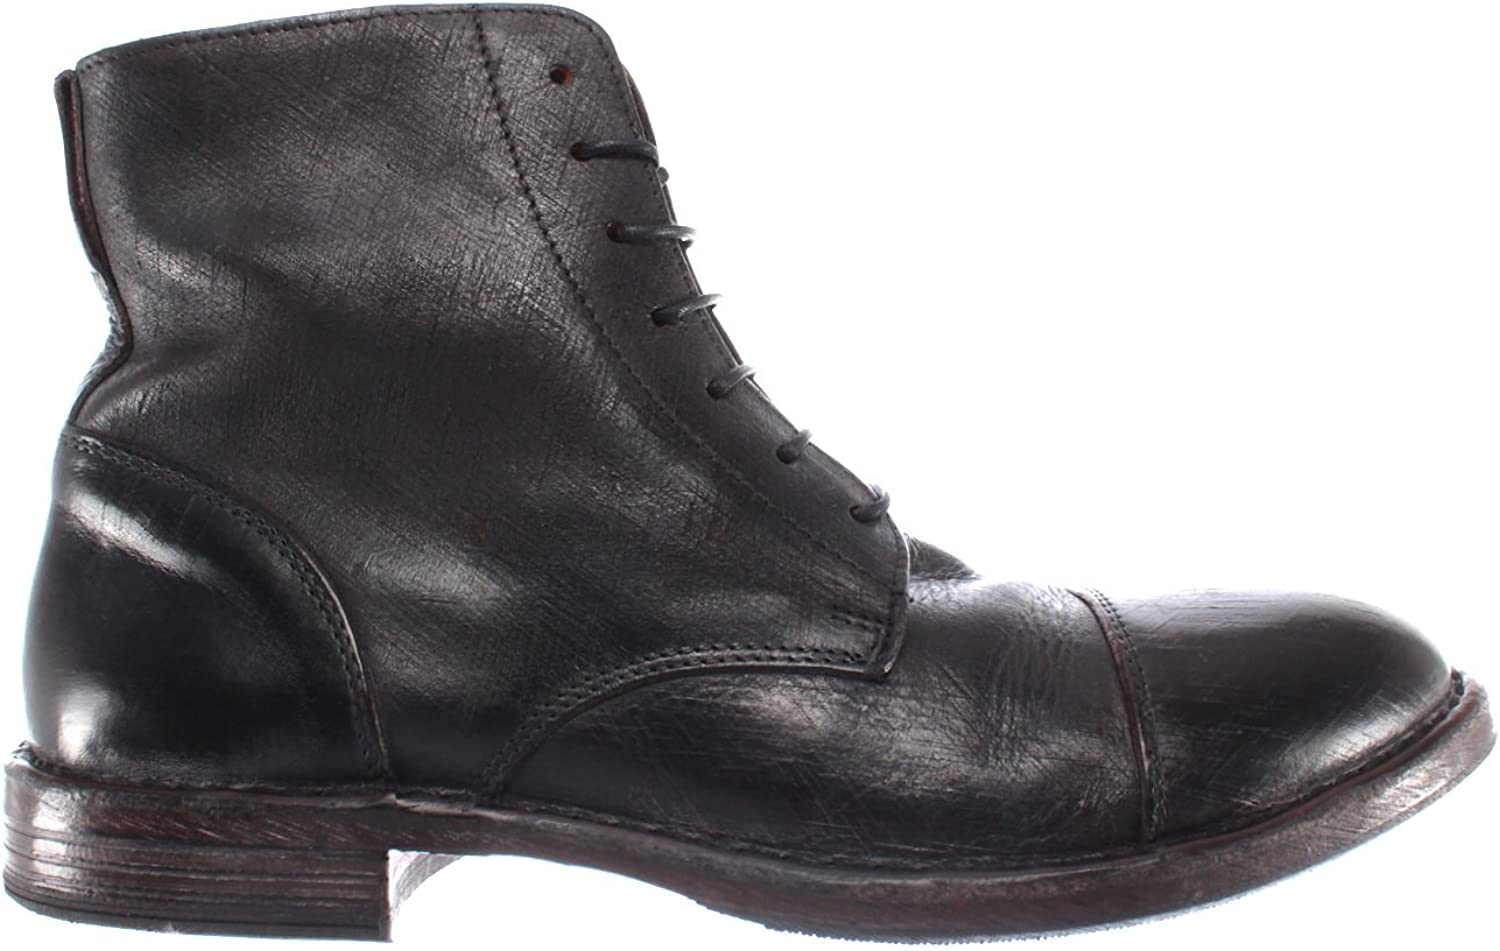 368c600dd MOMA Men's shoes Ankle Ankle Ankle Boots 66702-R2 Pelle Leather Black  Vintage Made New bbddc0